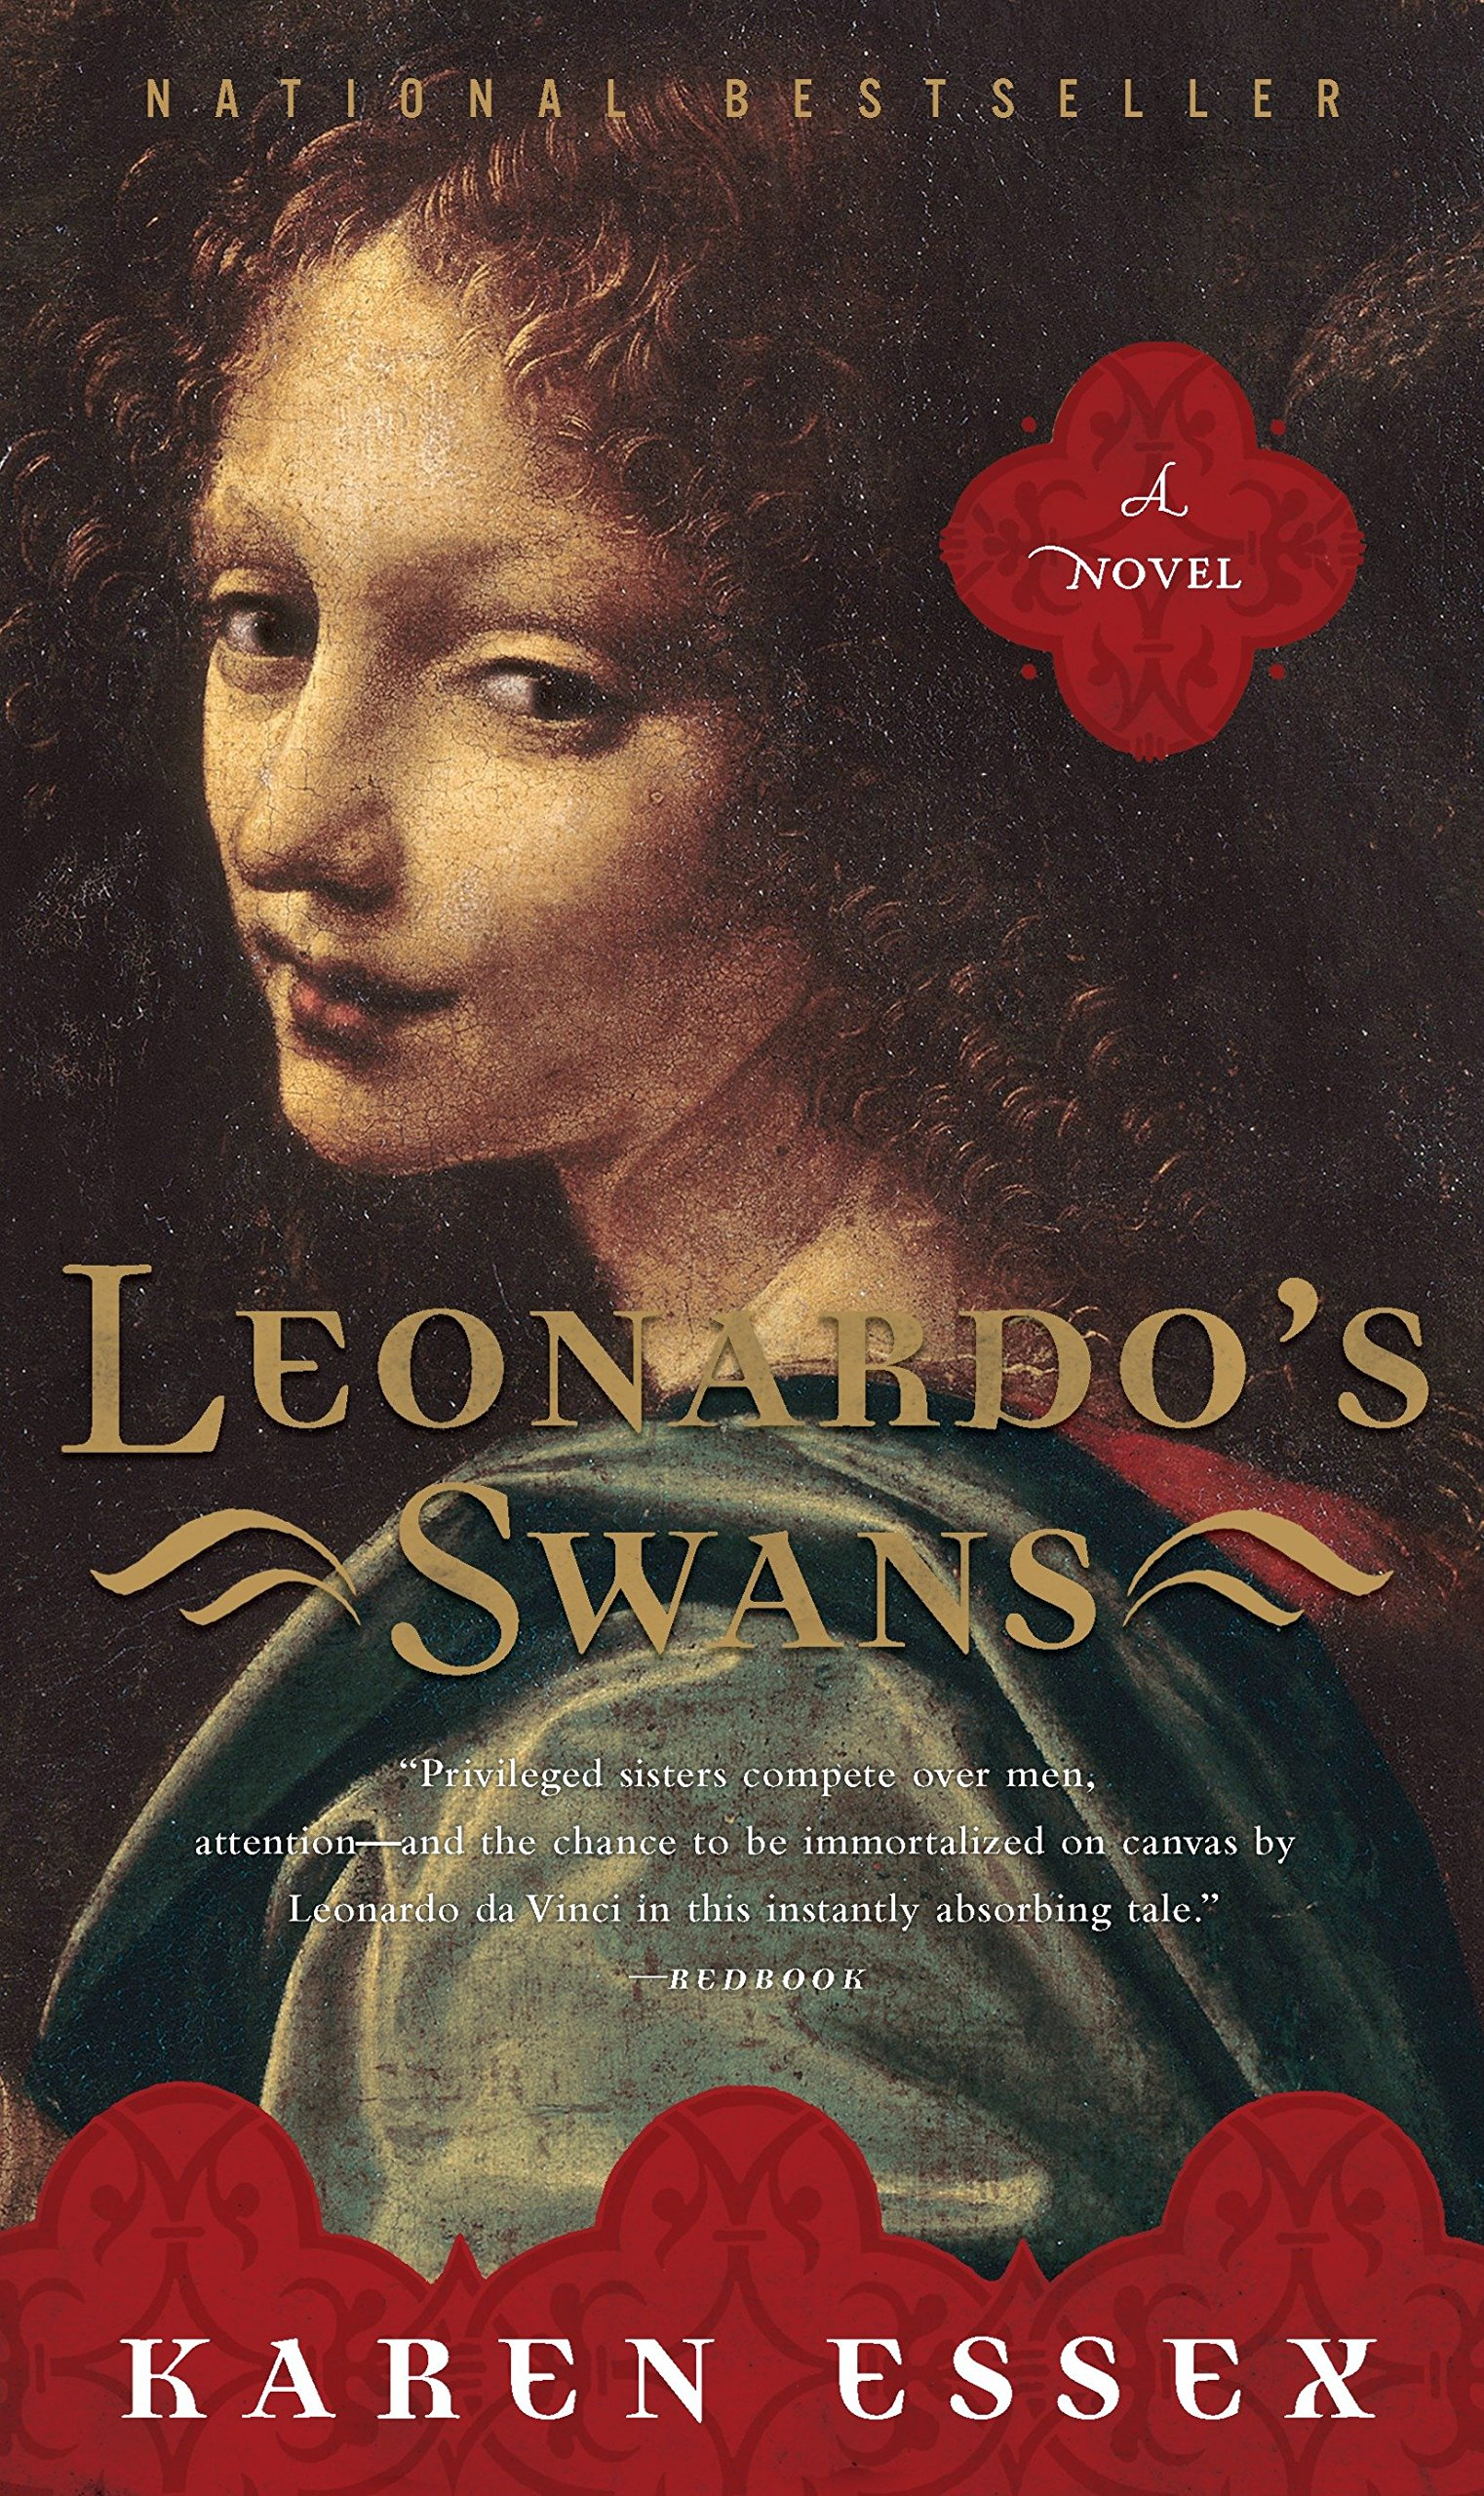 Leonardo's Swans by Karen Essex - This spellbinding novel brings the time period and the fierce sisterly rivalry between Isabella and Beatrice d'Este to life. And it provides some great insights into the maestro's work and this fascinating time period in Italian history. Really enjoyed this one!